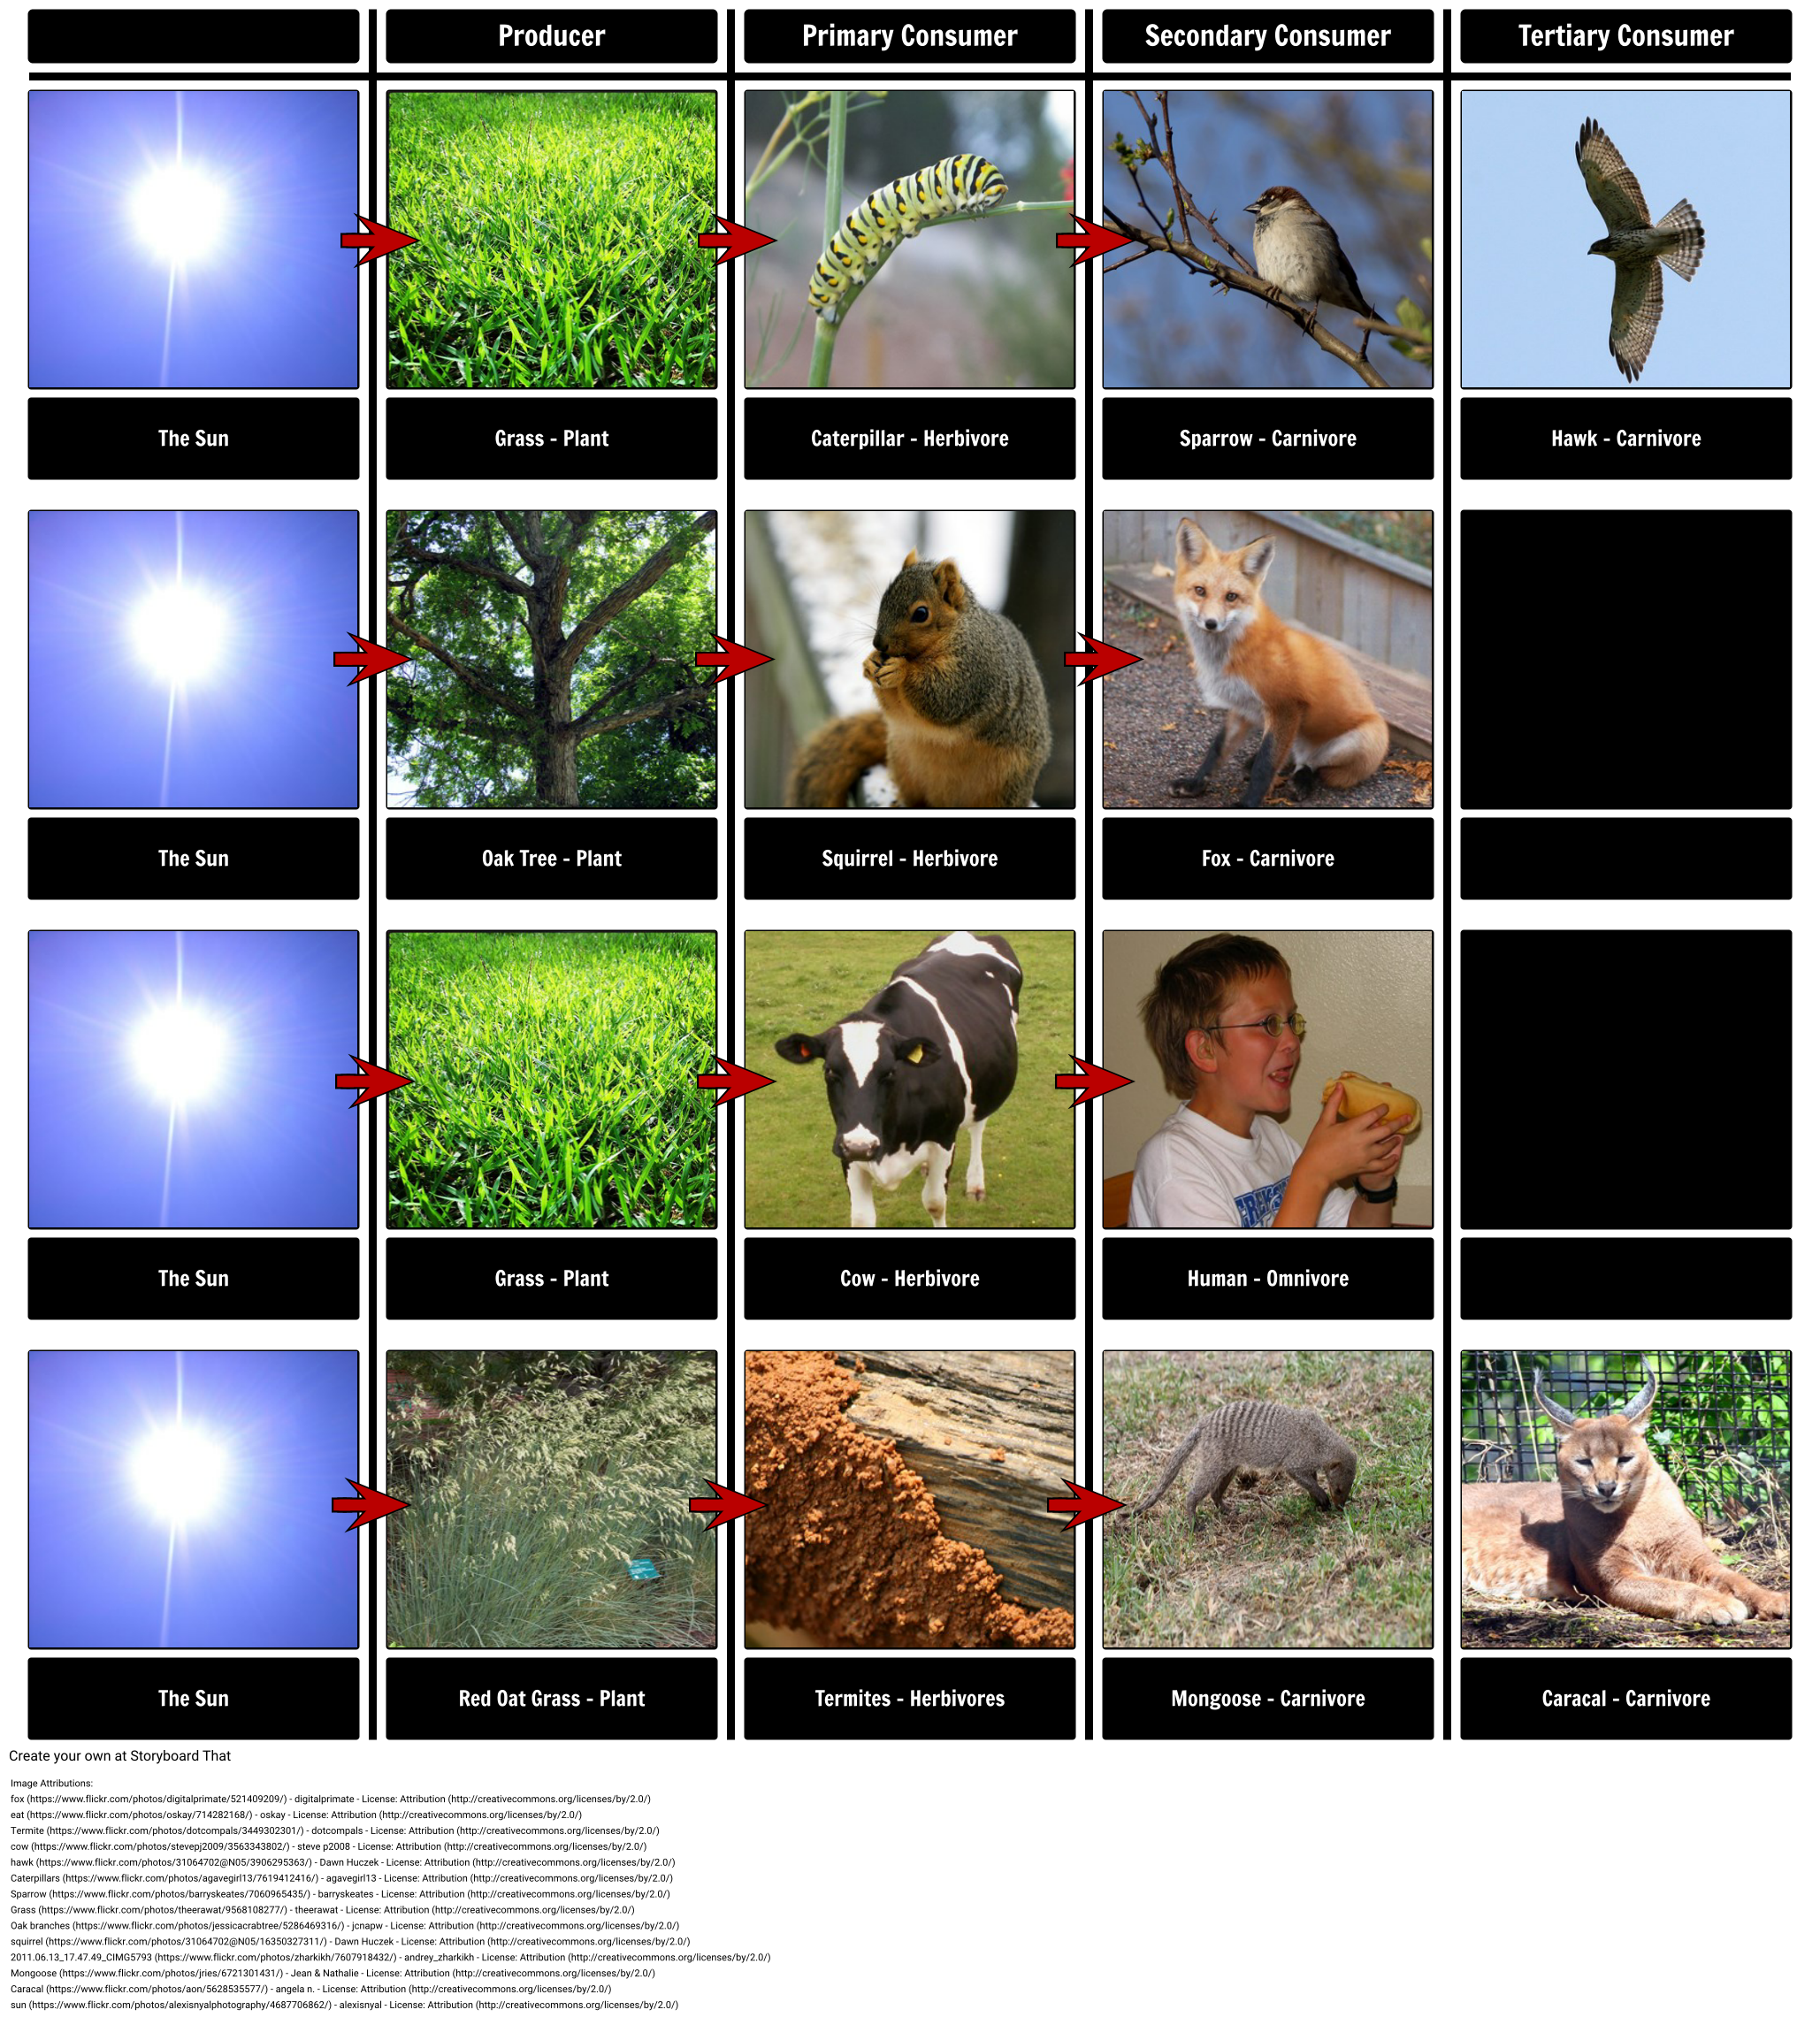 Food Chain & Food Web Examples, Definition & Activities